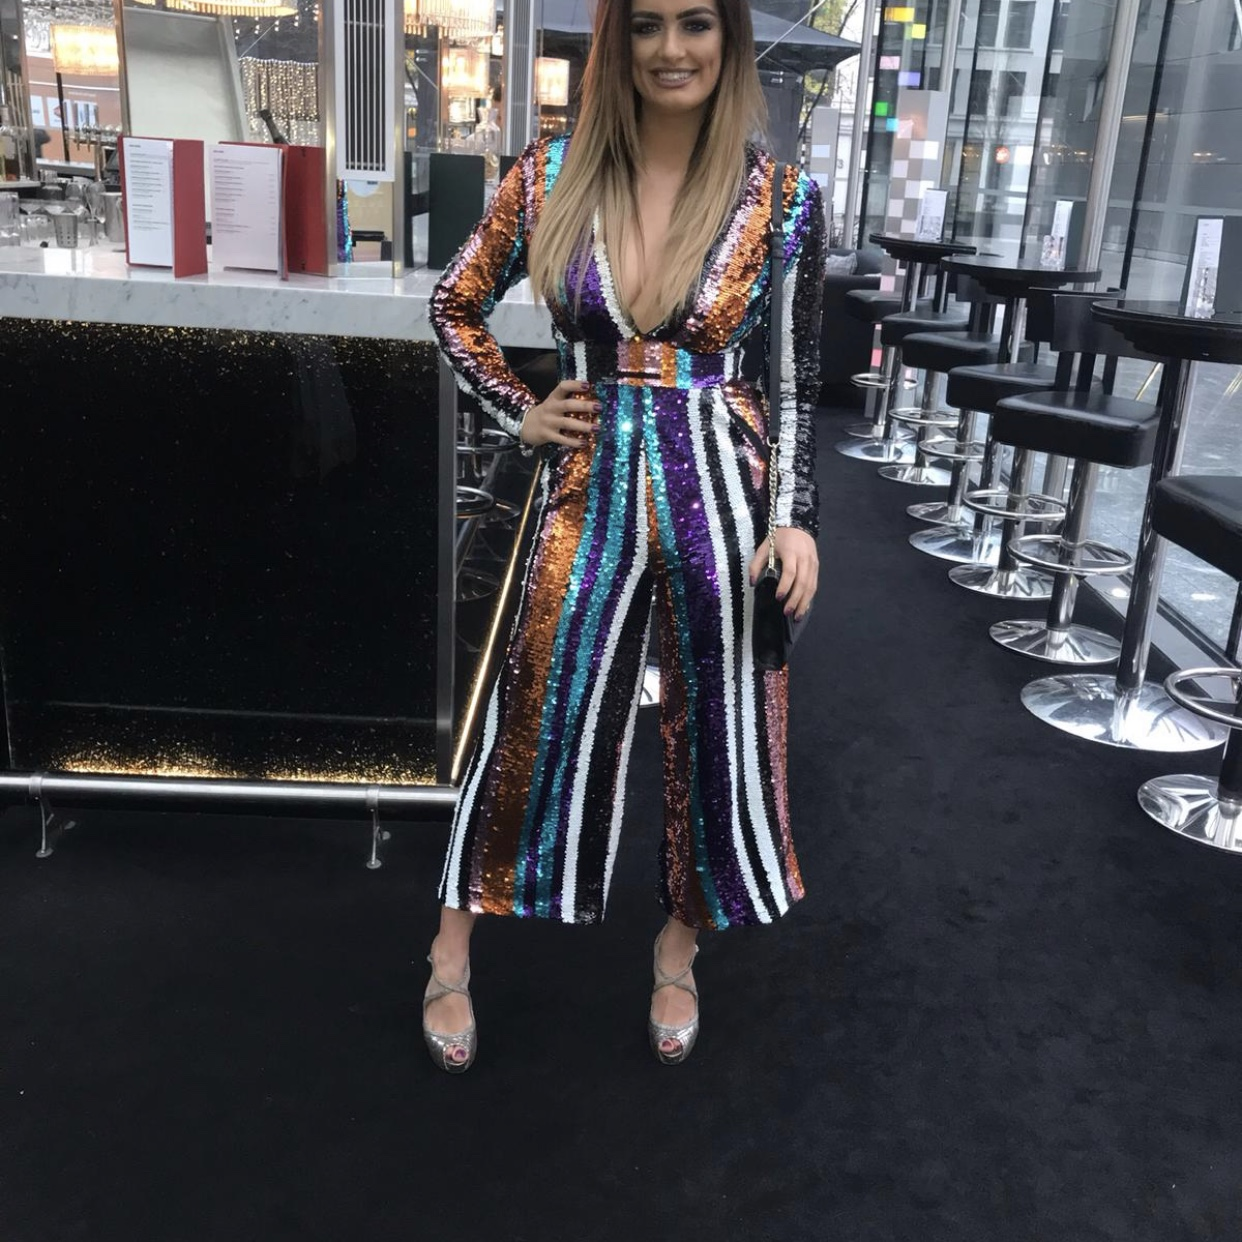 skate shoes search for clearance discount collection Club L London Stripe Sequins Plunge Jumpsuit RPR £65 ...